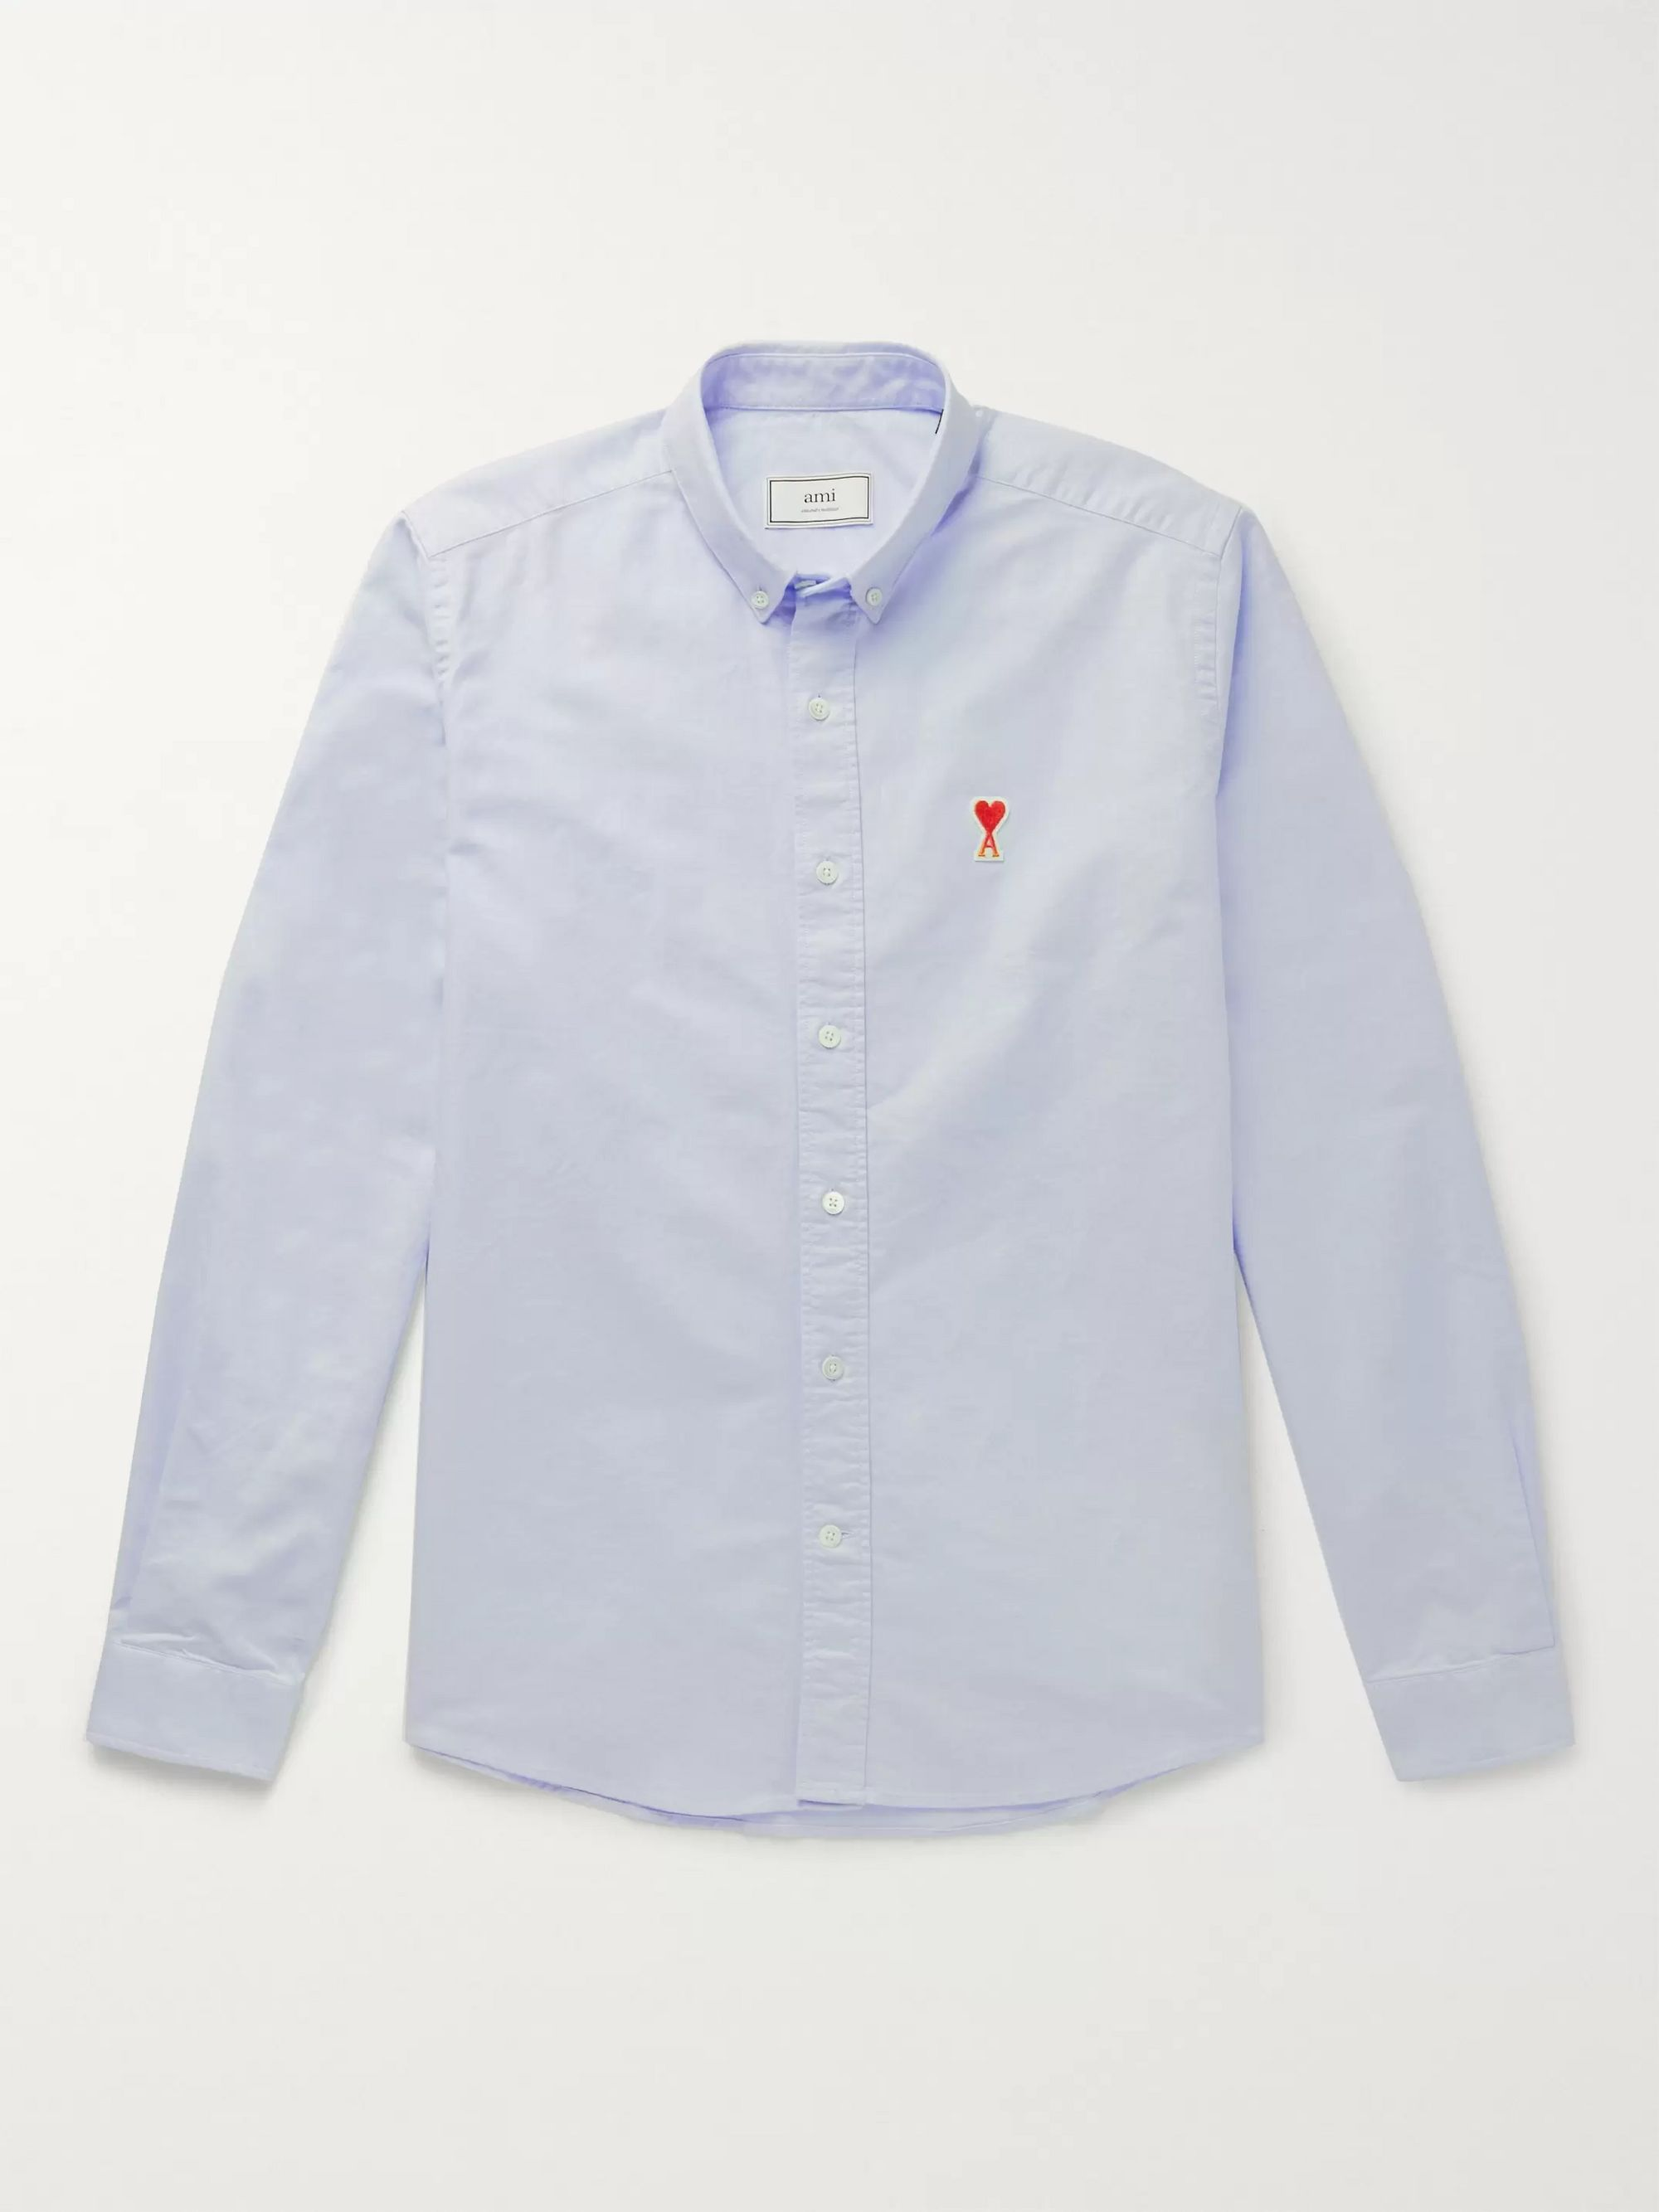 AMI Button-Down Collar Logo-Appliquéd Cotton Oxford Shirt